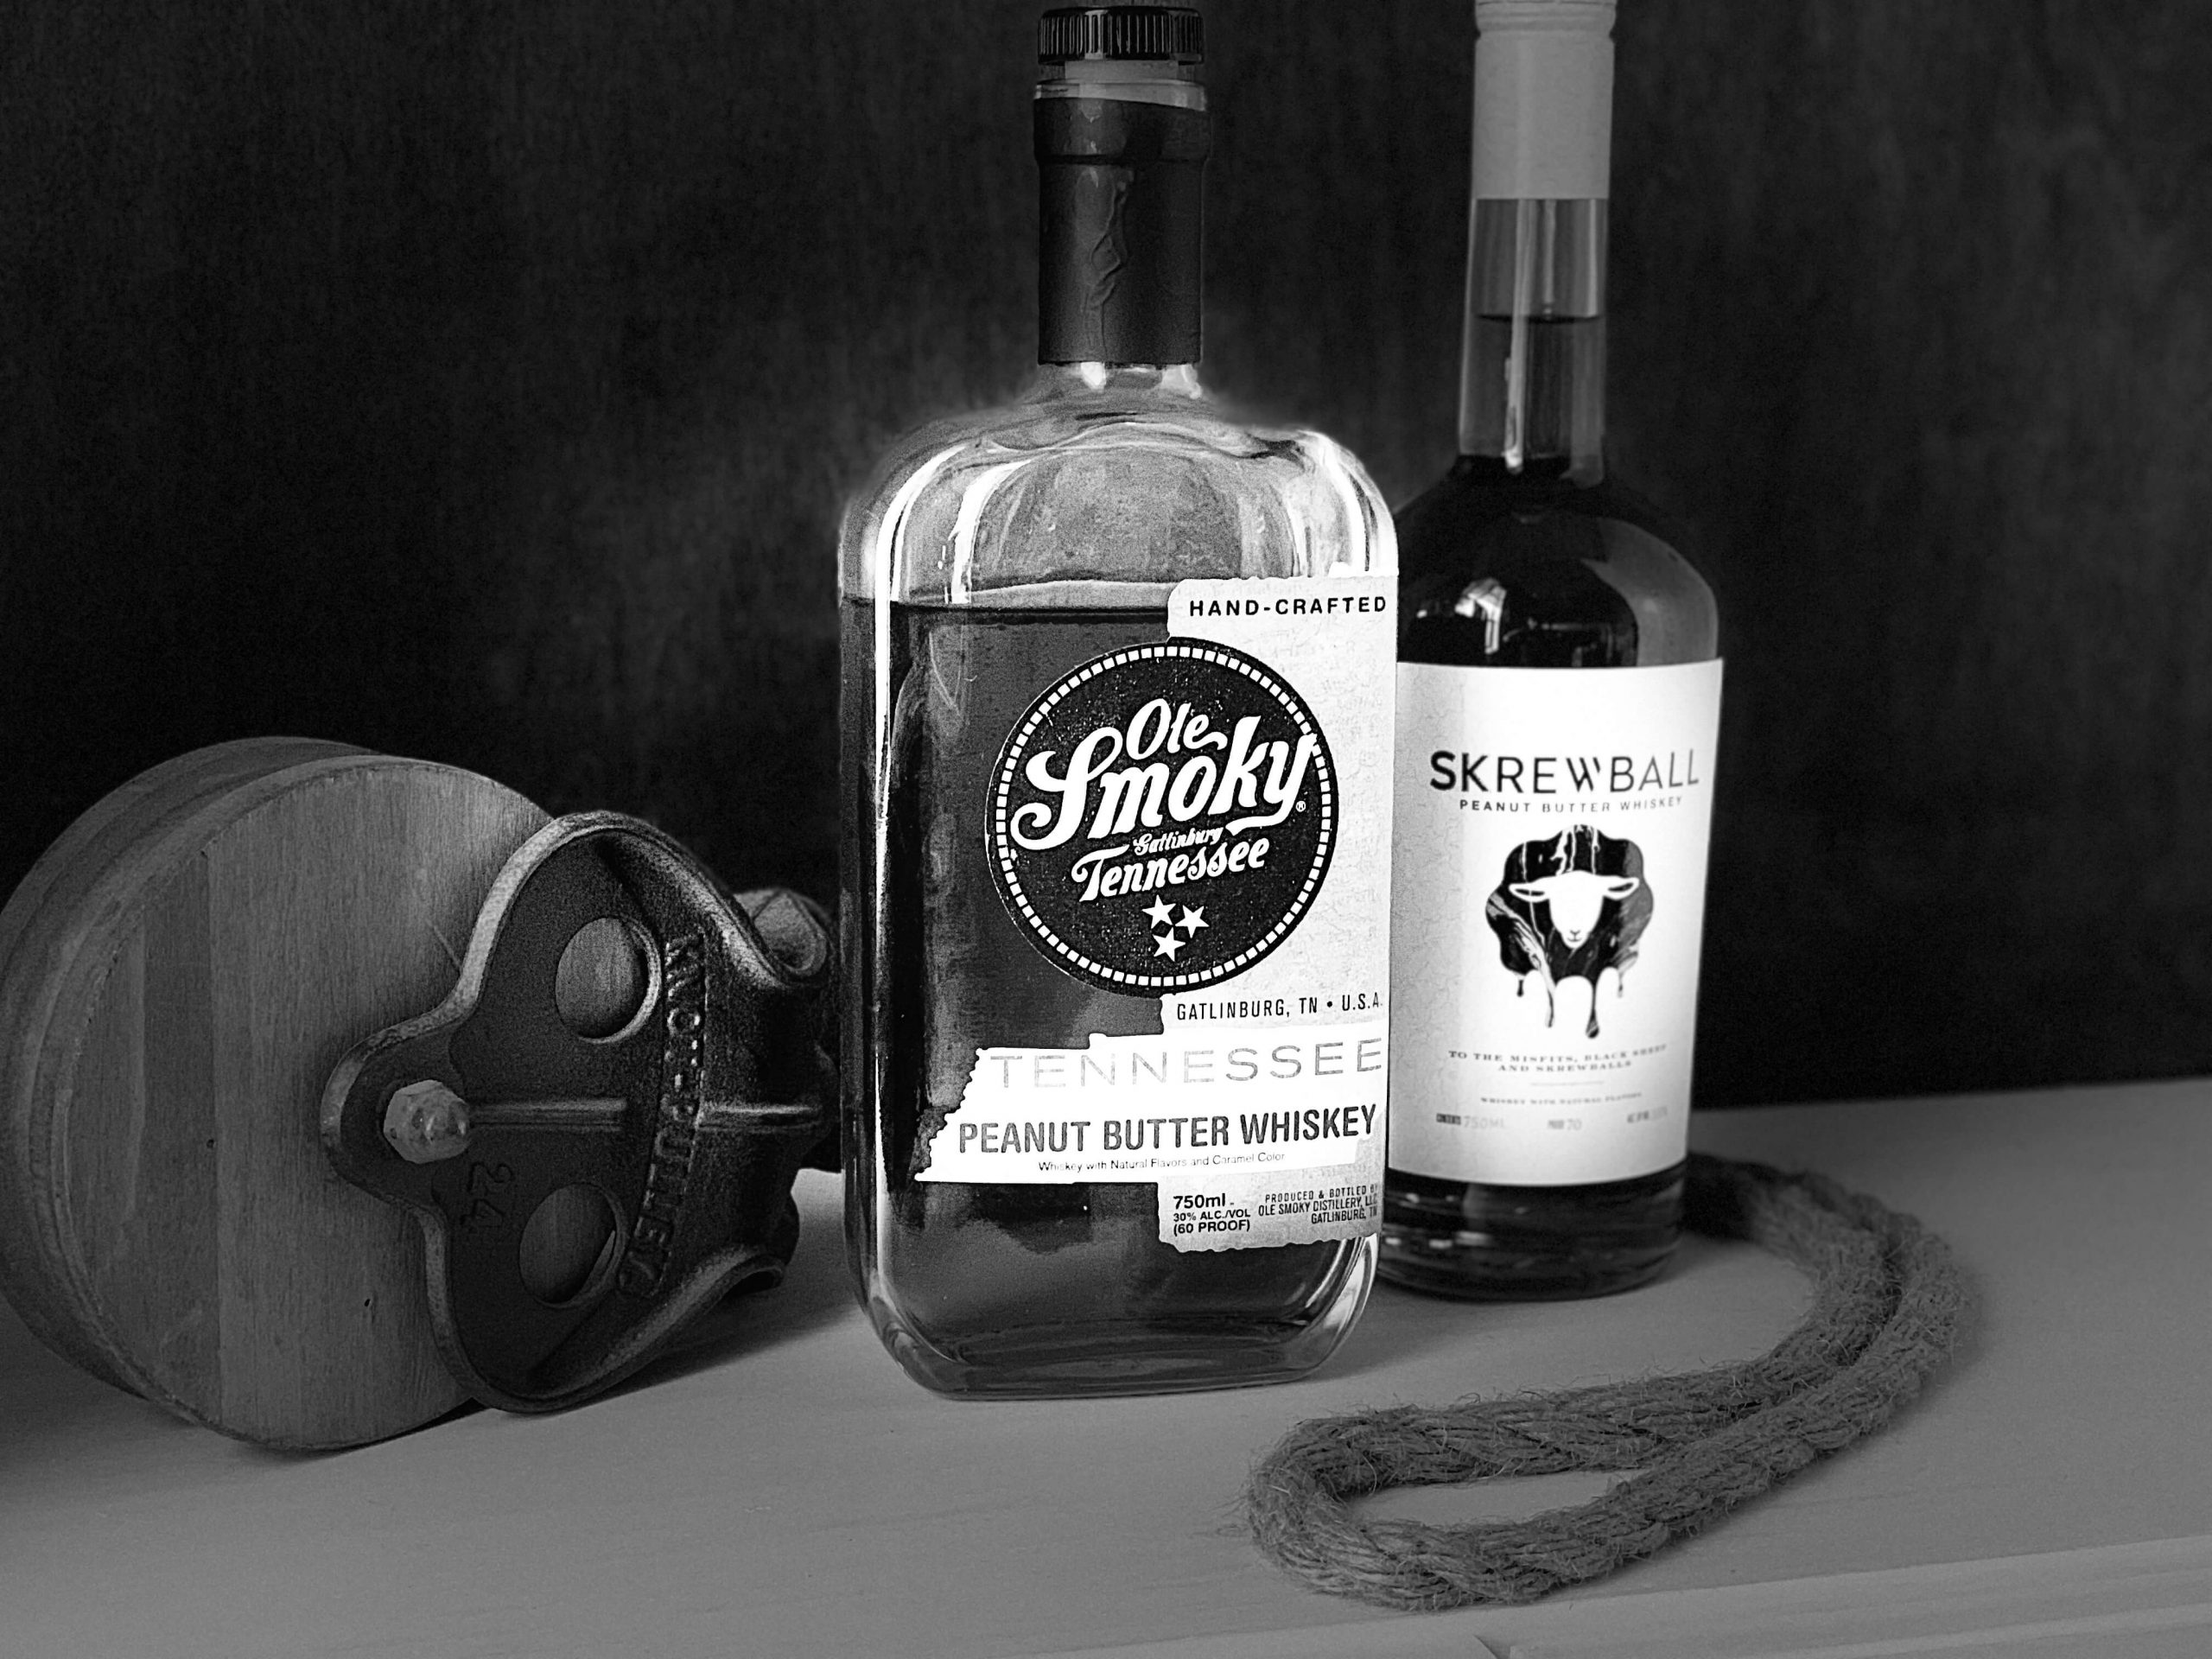 Ole Smoky Peanut butter whiskey and Skrewball peanut butter whiskey